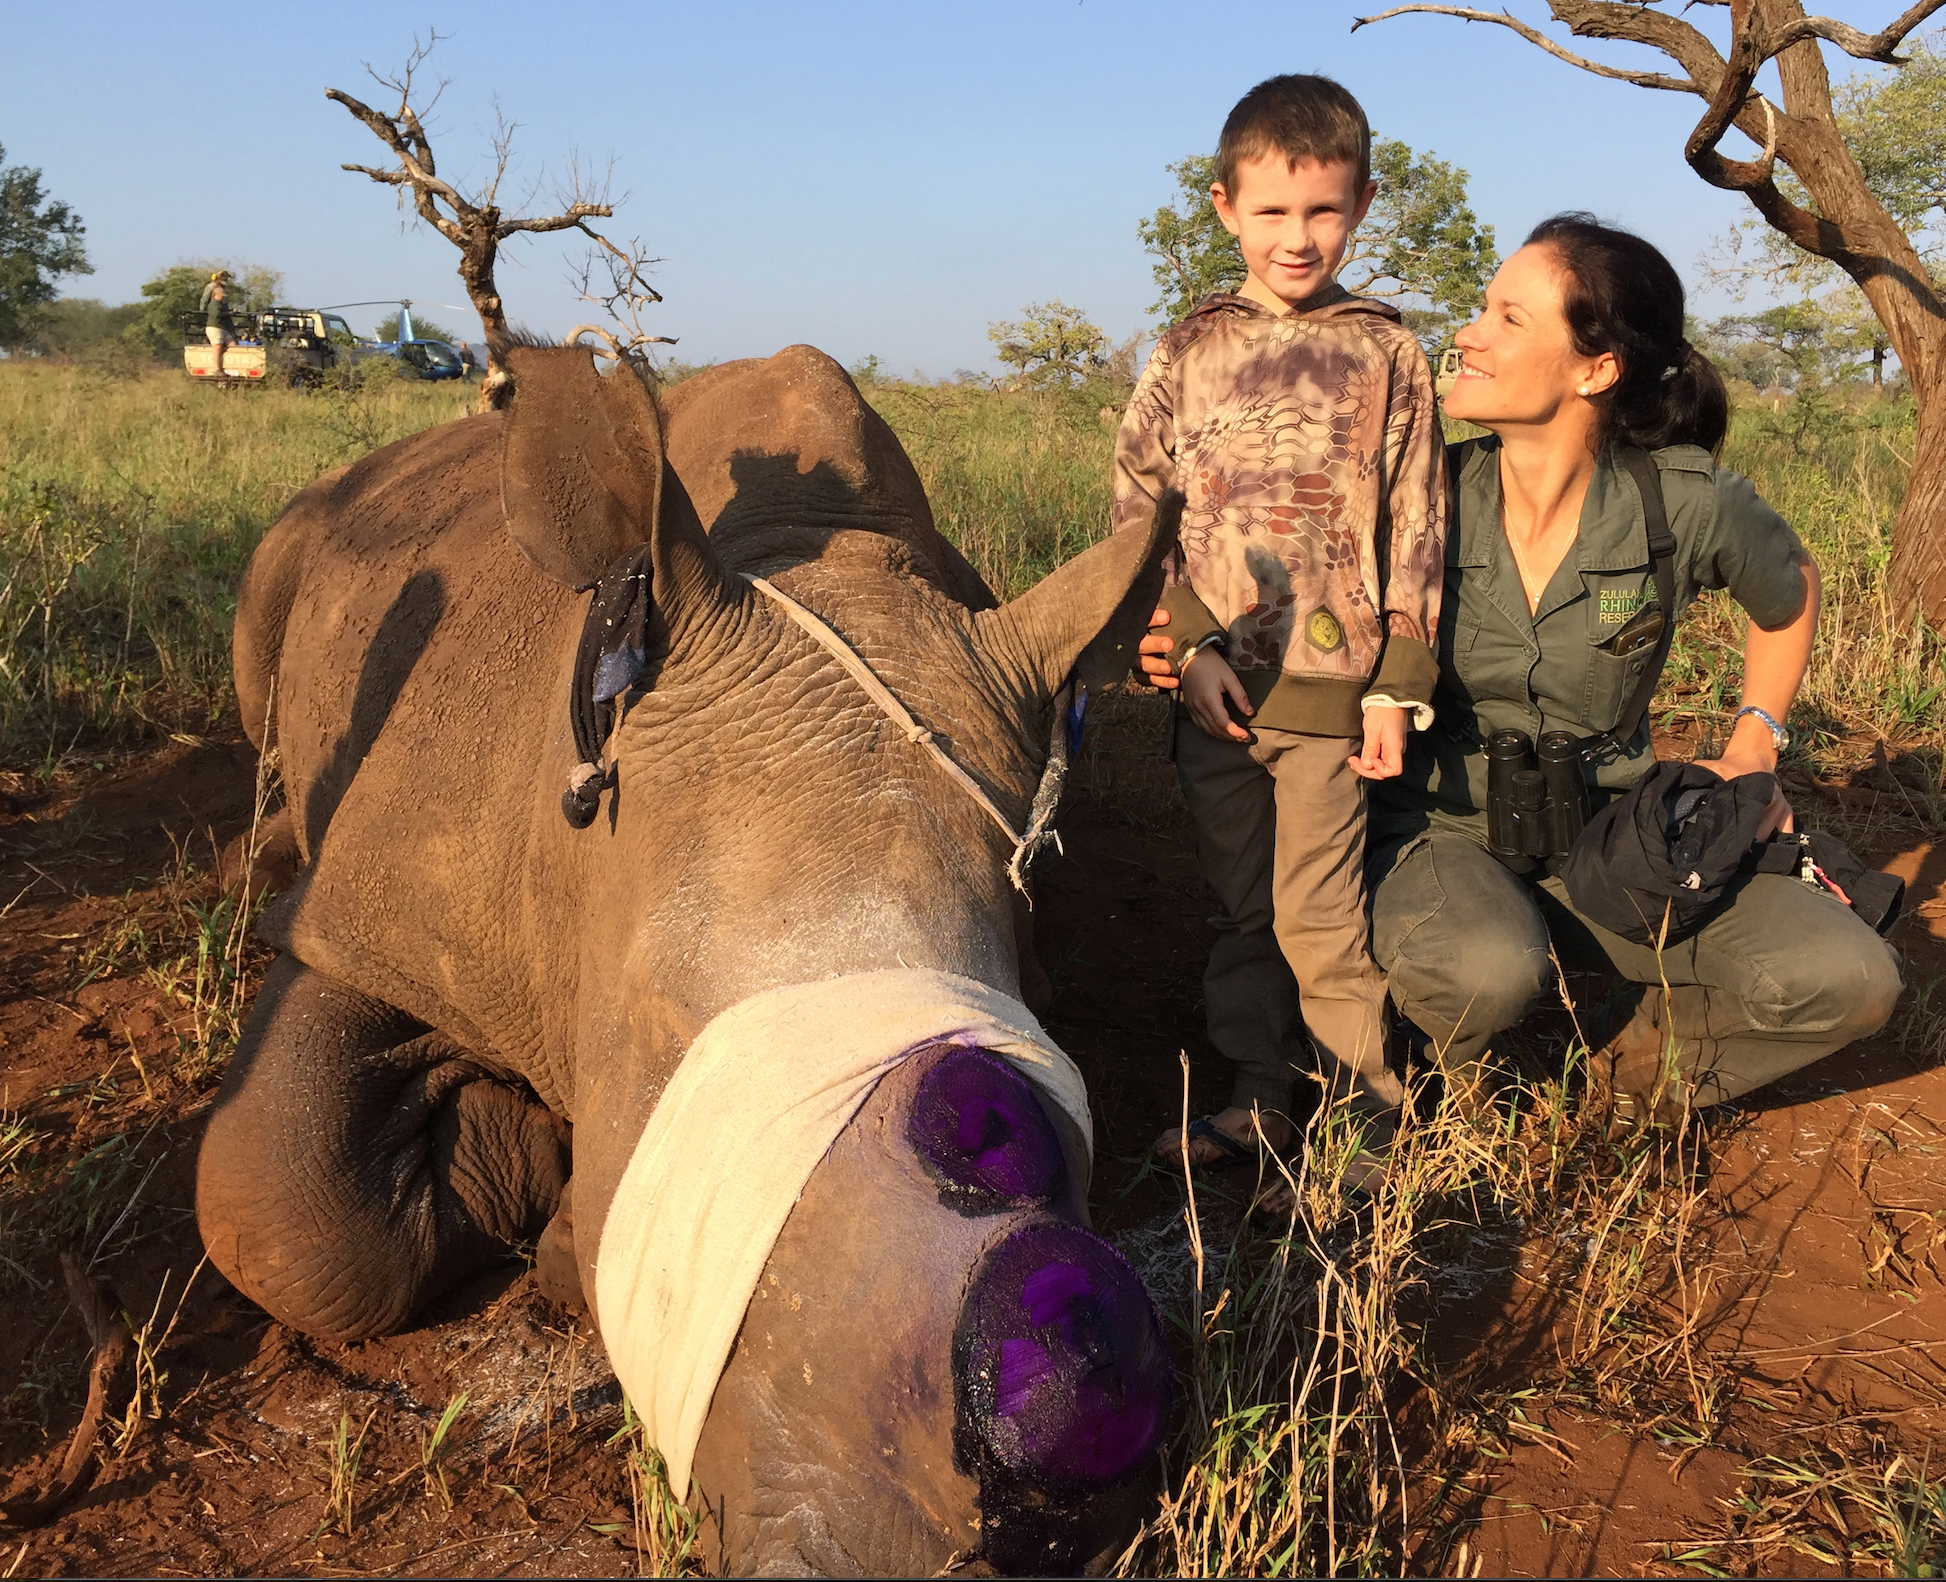 My son Trail with one of Africa's true wildlife heroes, Karen Holmes, with a freshly dehorned rhino. I am so blessed to be able to give my kids the opportunity to truly see Africa for what it really is, the good and the bad. But they will only realize when they get older how special a moment like this with someone like her truly is. Thank you Karen and all the wildlife heroes out there. Indeed you are helping make sure our kids will also get to enjoy the outdoors as we do.